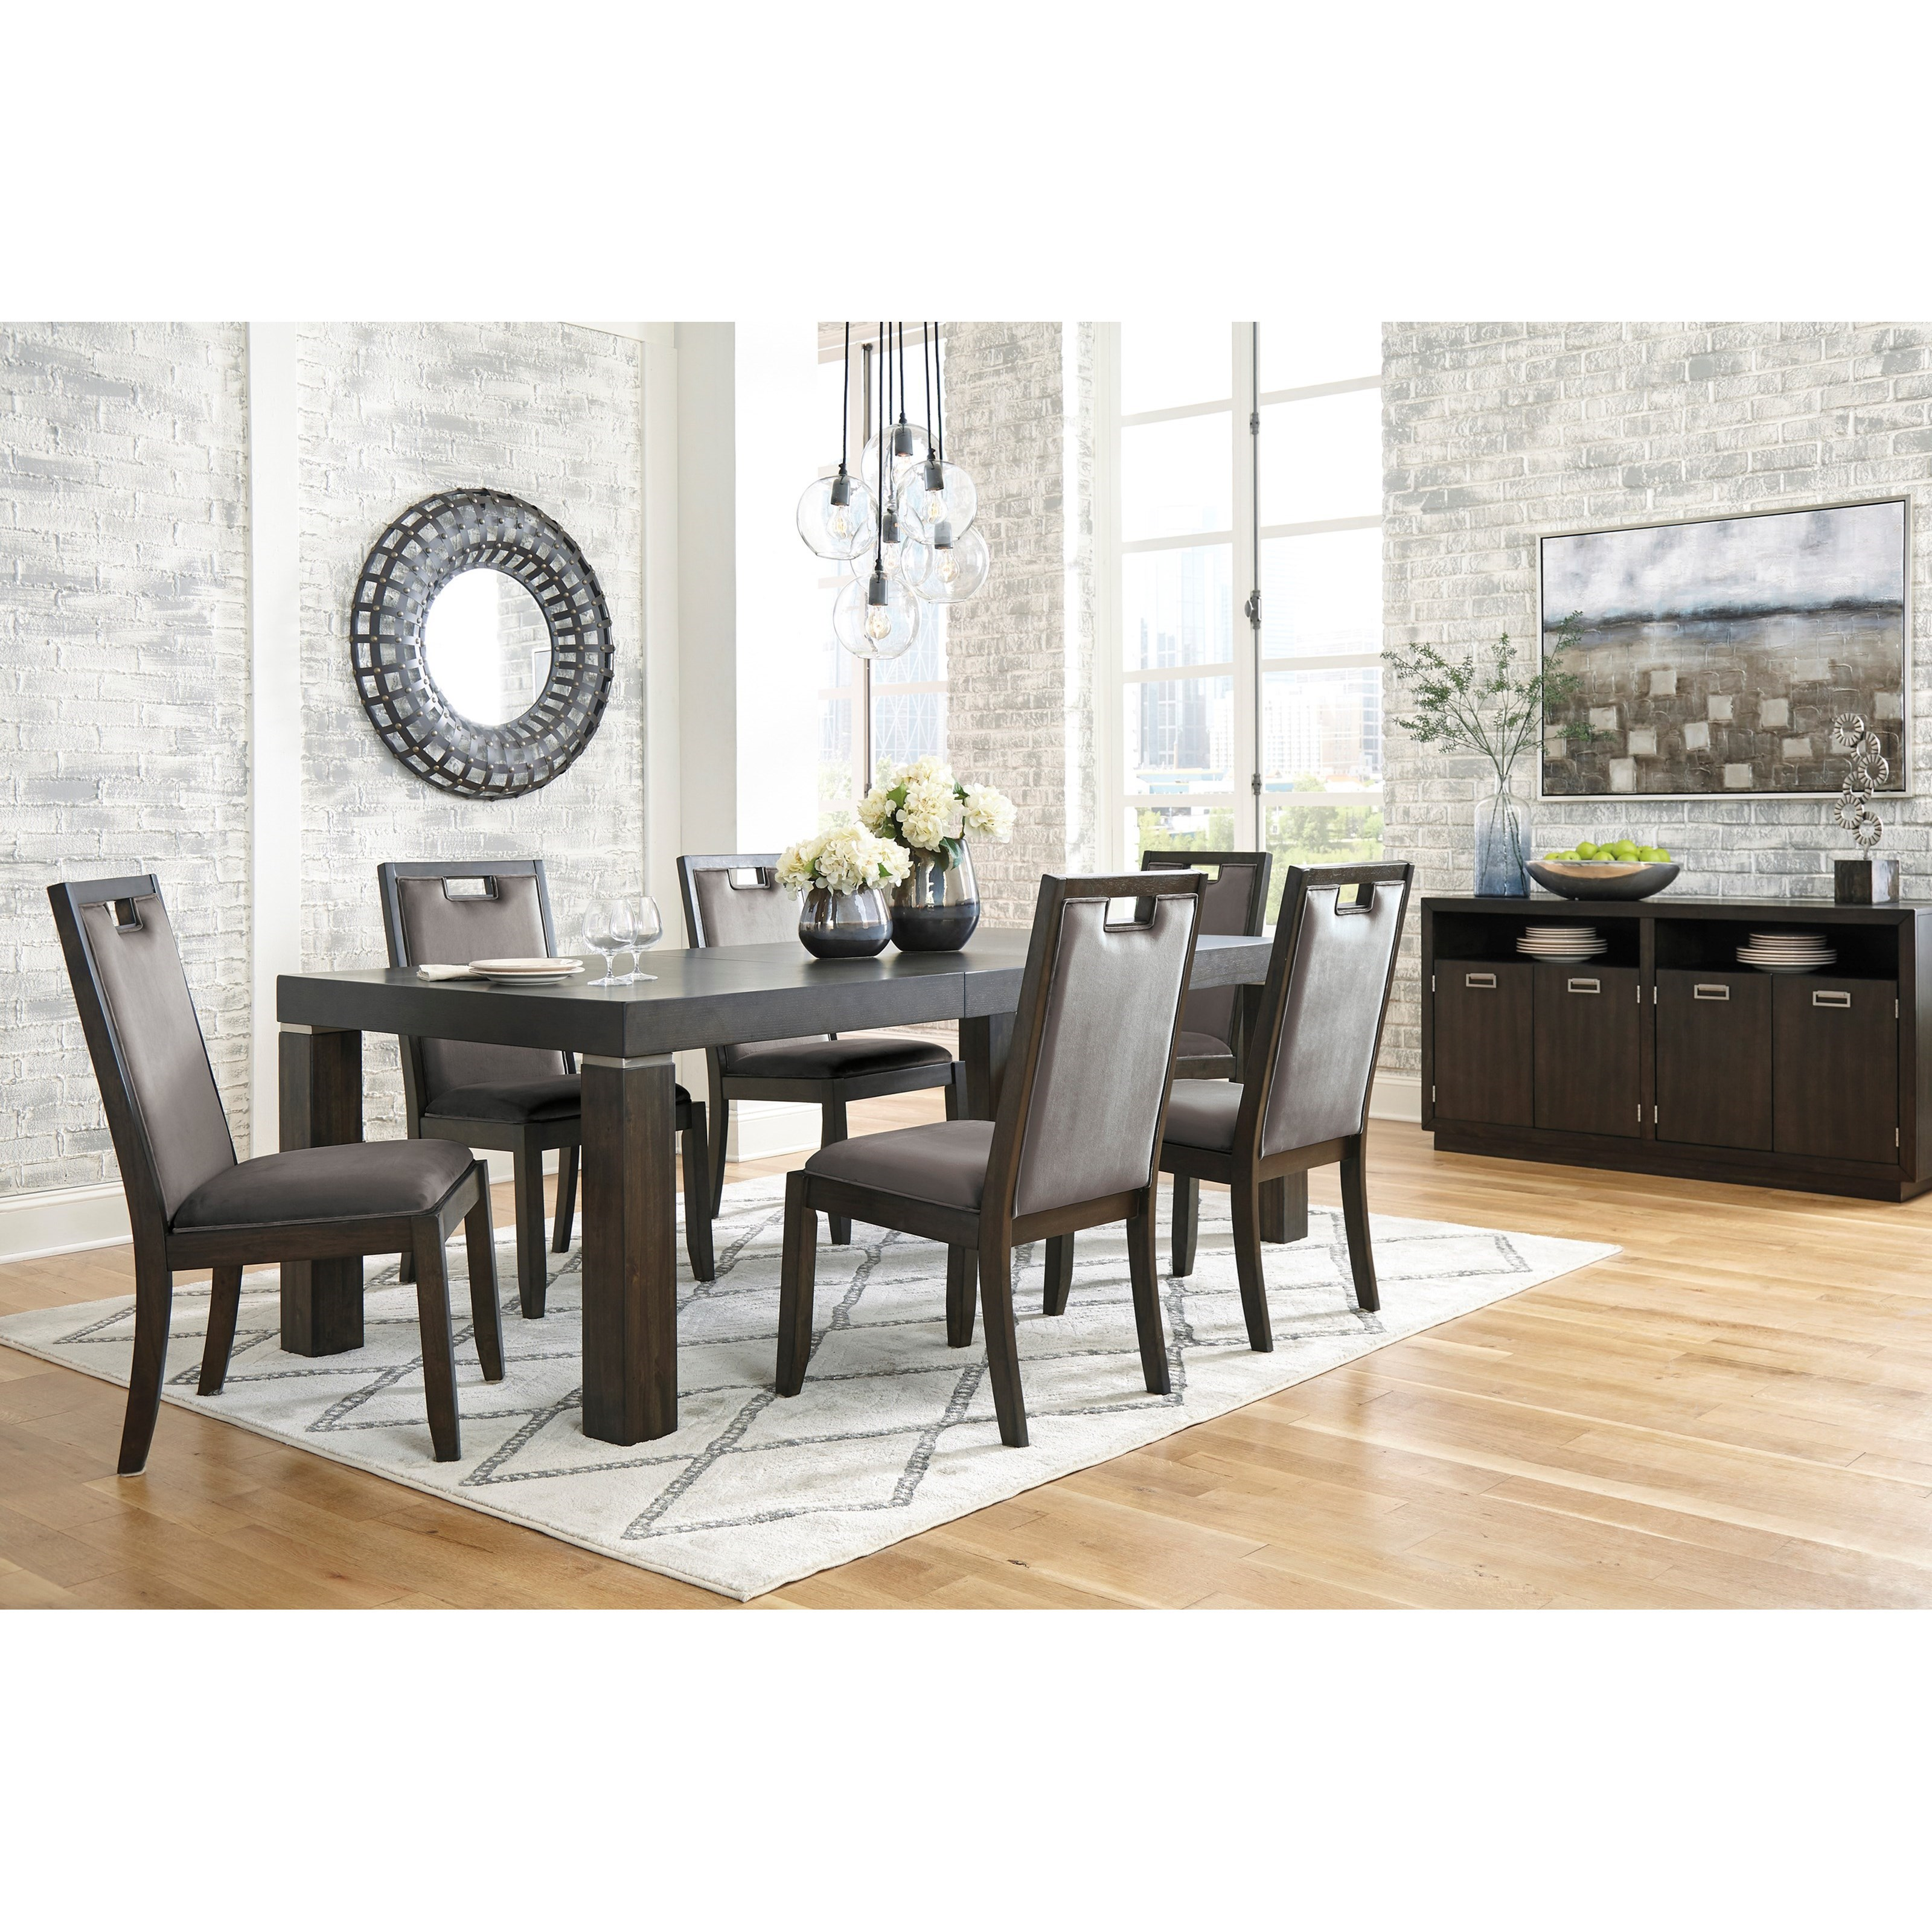 Hyndell Dining Room Group by Ashley (Signature Design) at Johnny Janosik